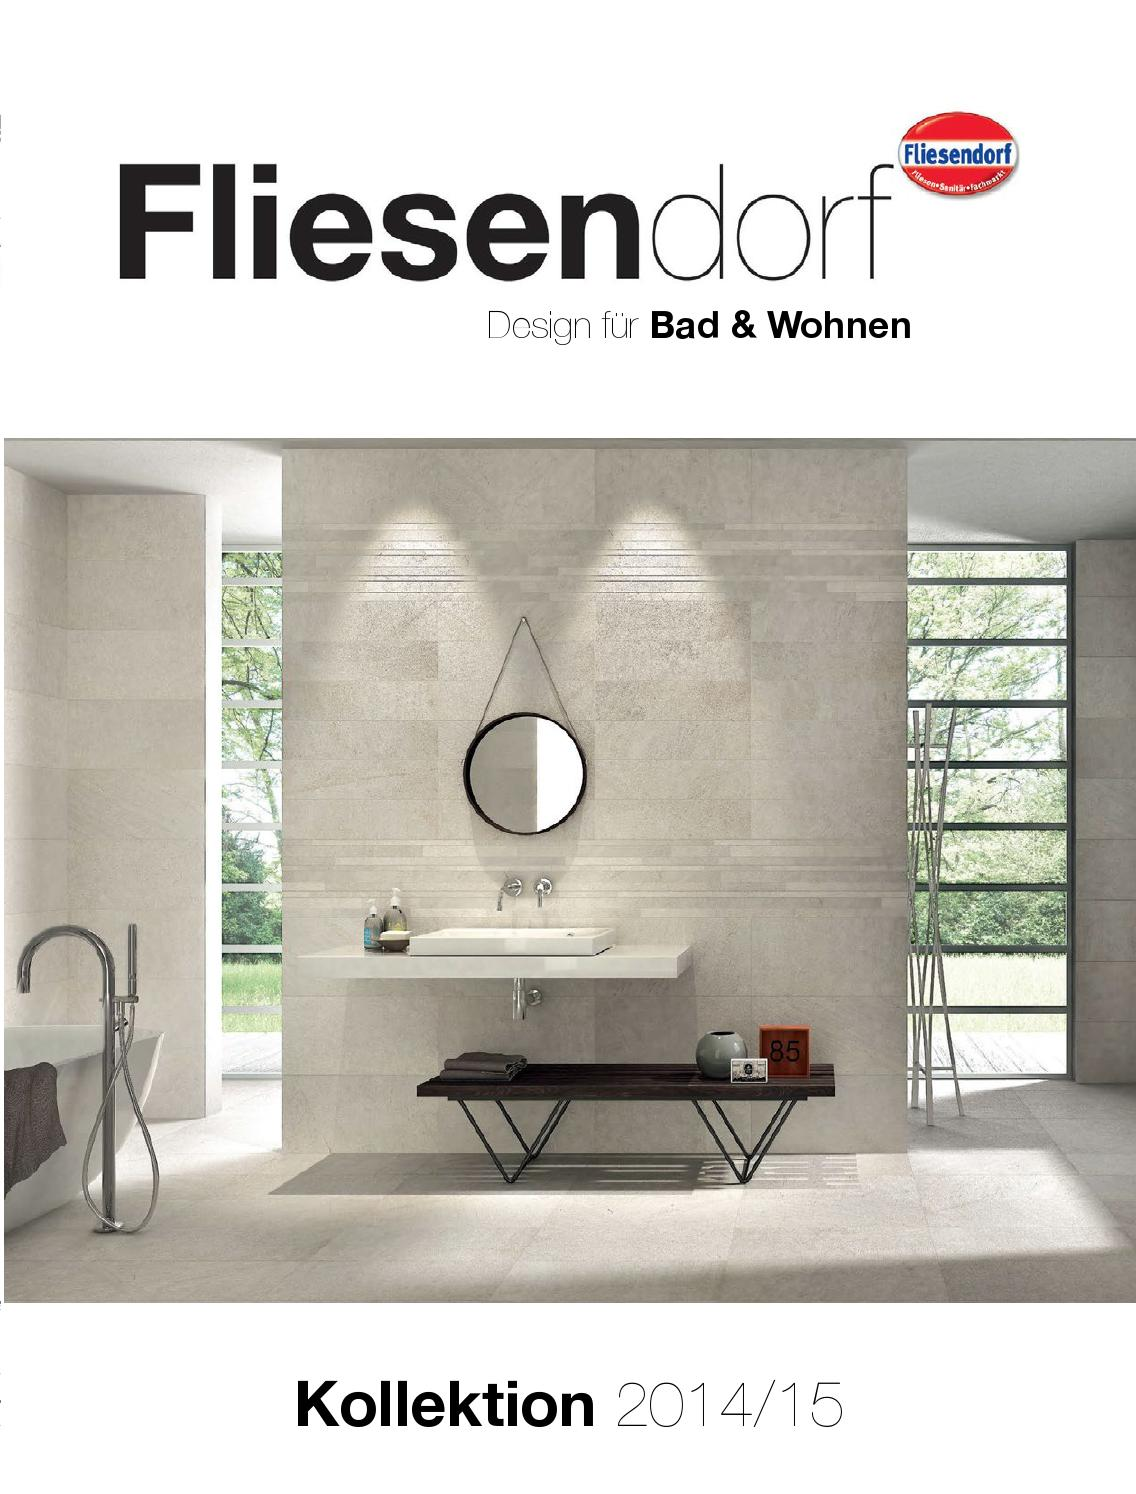 Fliesendorf Kollektion 2014 2015 By Fliesendorf At Issuu